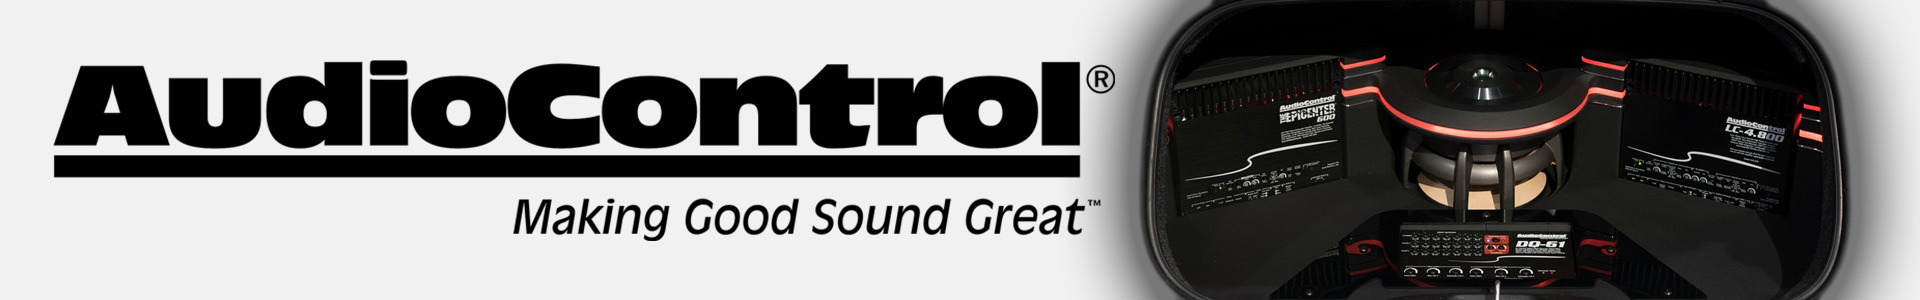 AudioControl - Making Good Sound Great!